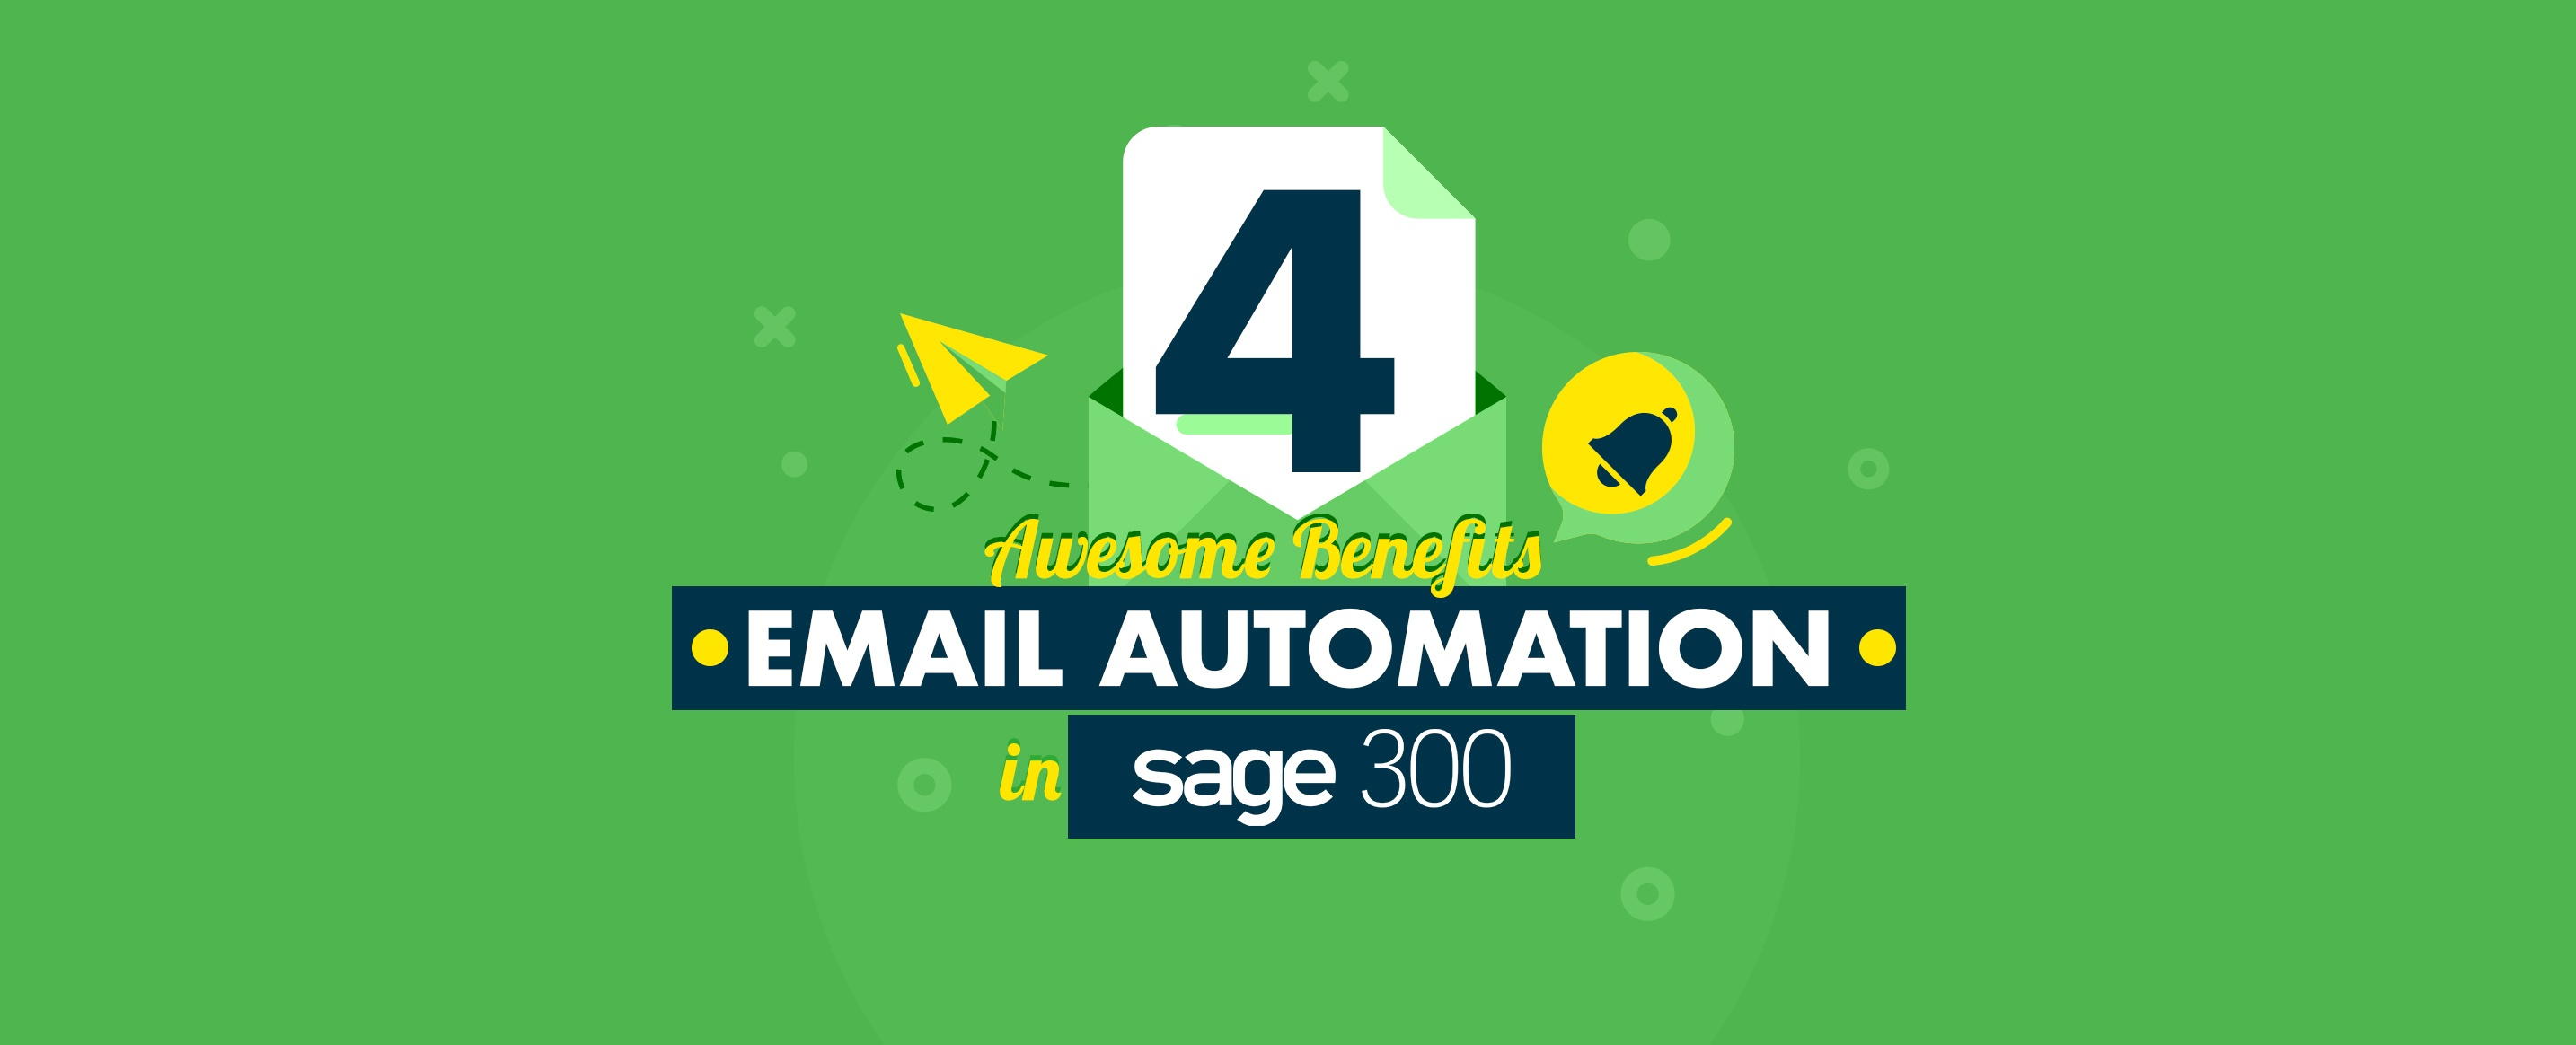 4-Awesome-Benefits-of-Email-Automation-in-Sage-300